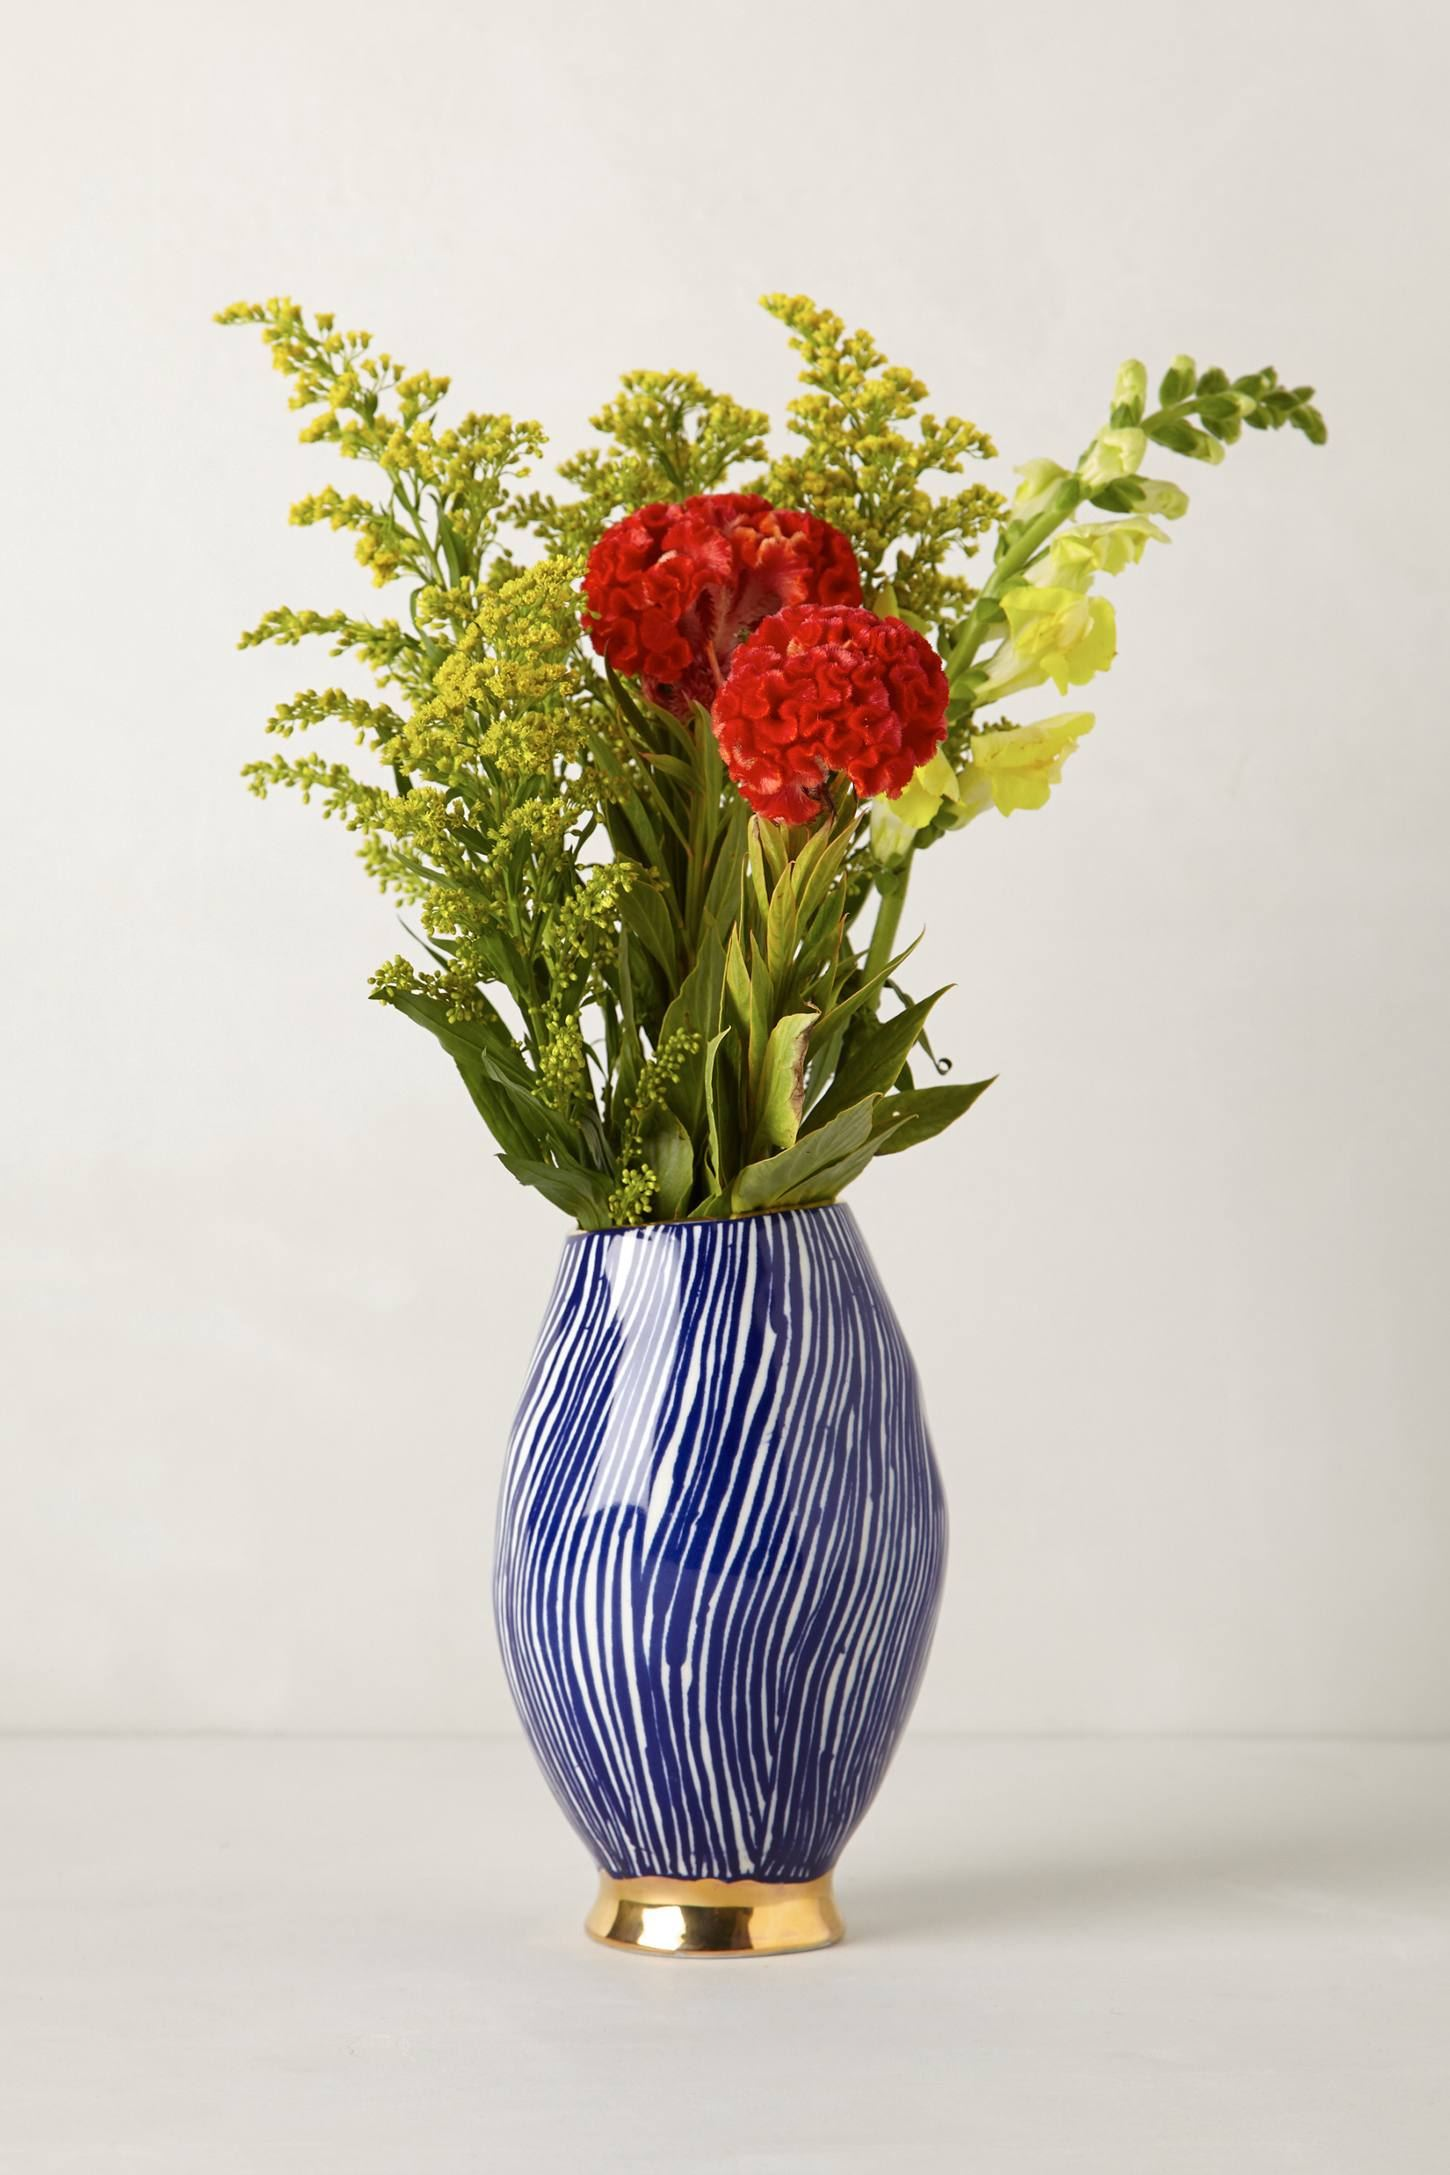 Blue and white vase from Anthropologie